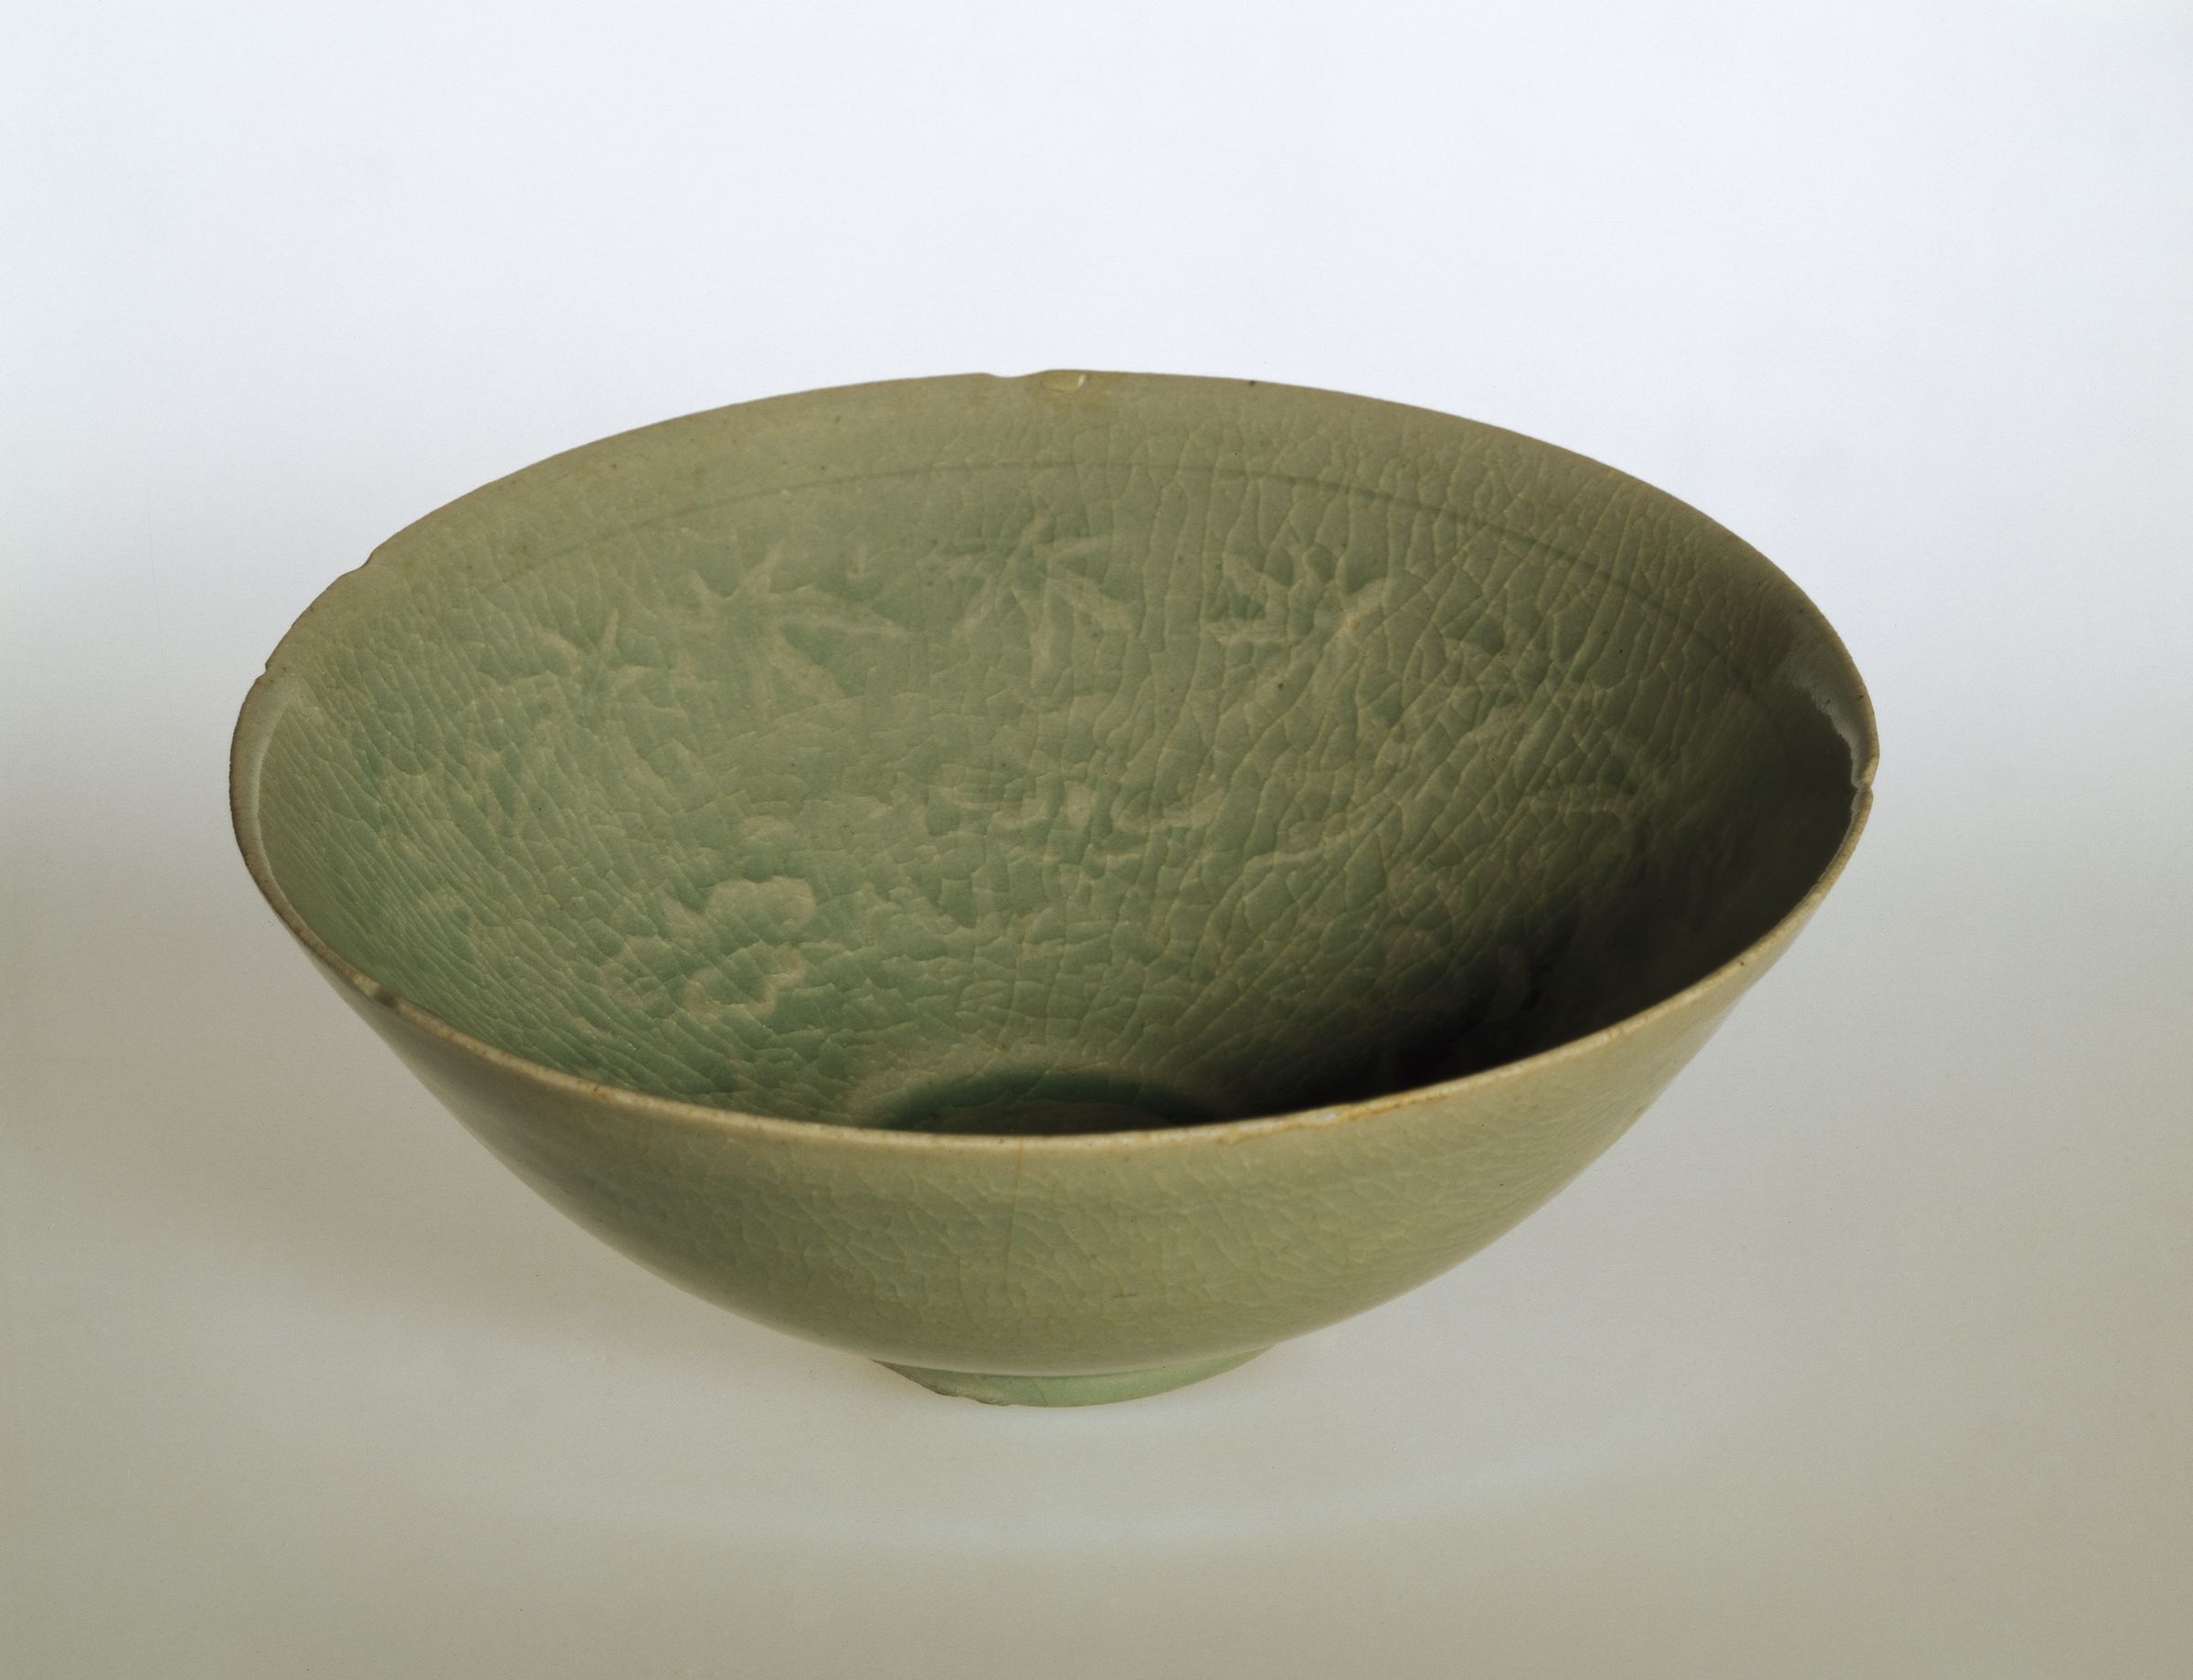 Circular Bowl With Notched Rim And Hibiscus Decor